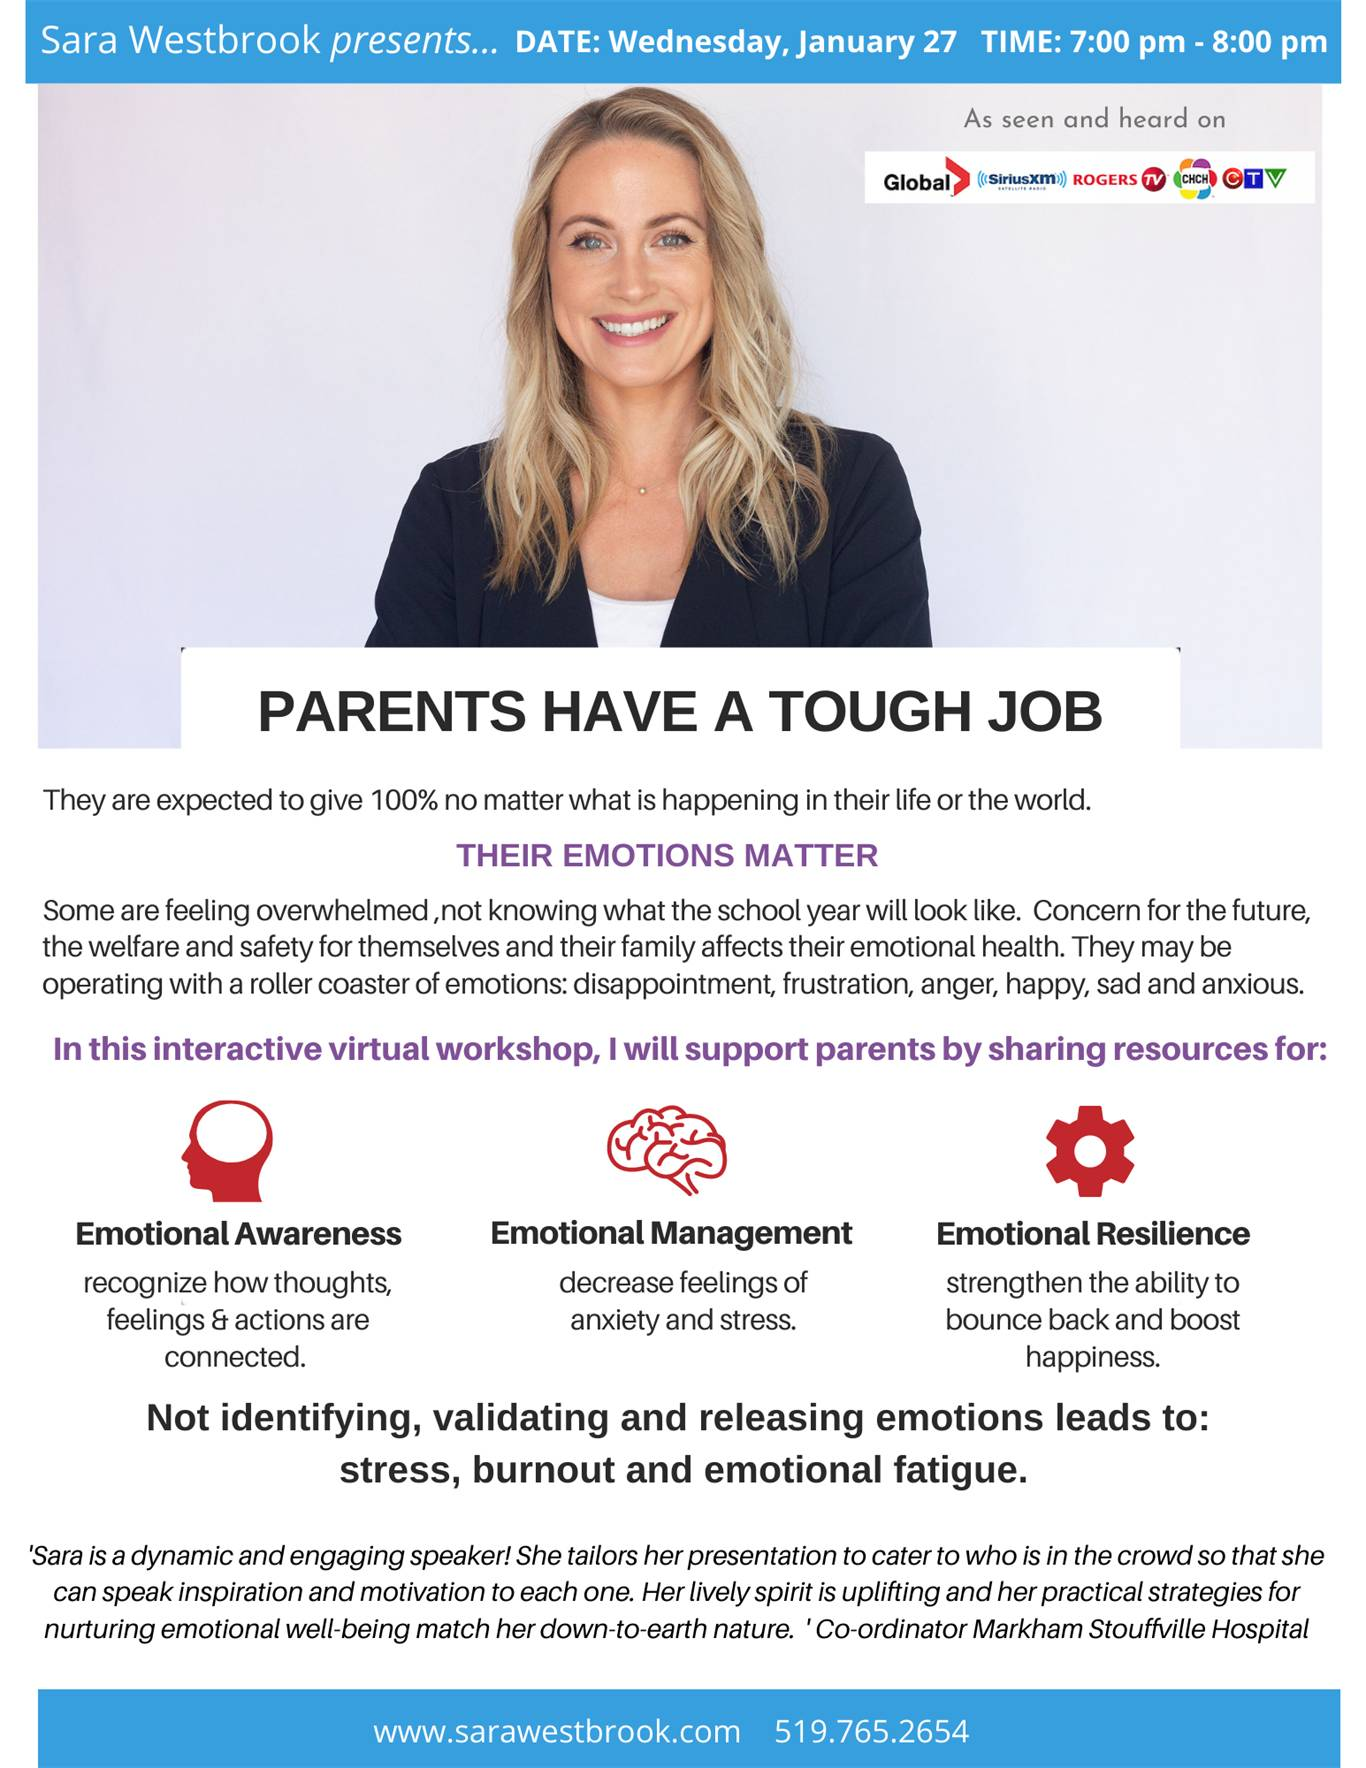 Parents Have A Tough Job: An Evening with Sara Westbrook